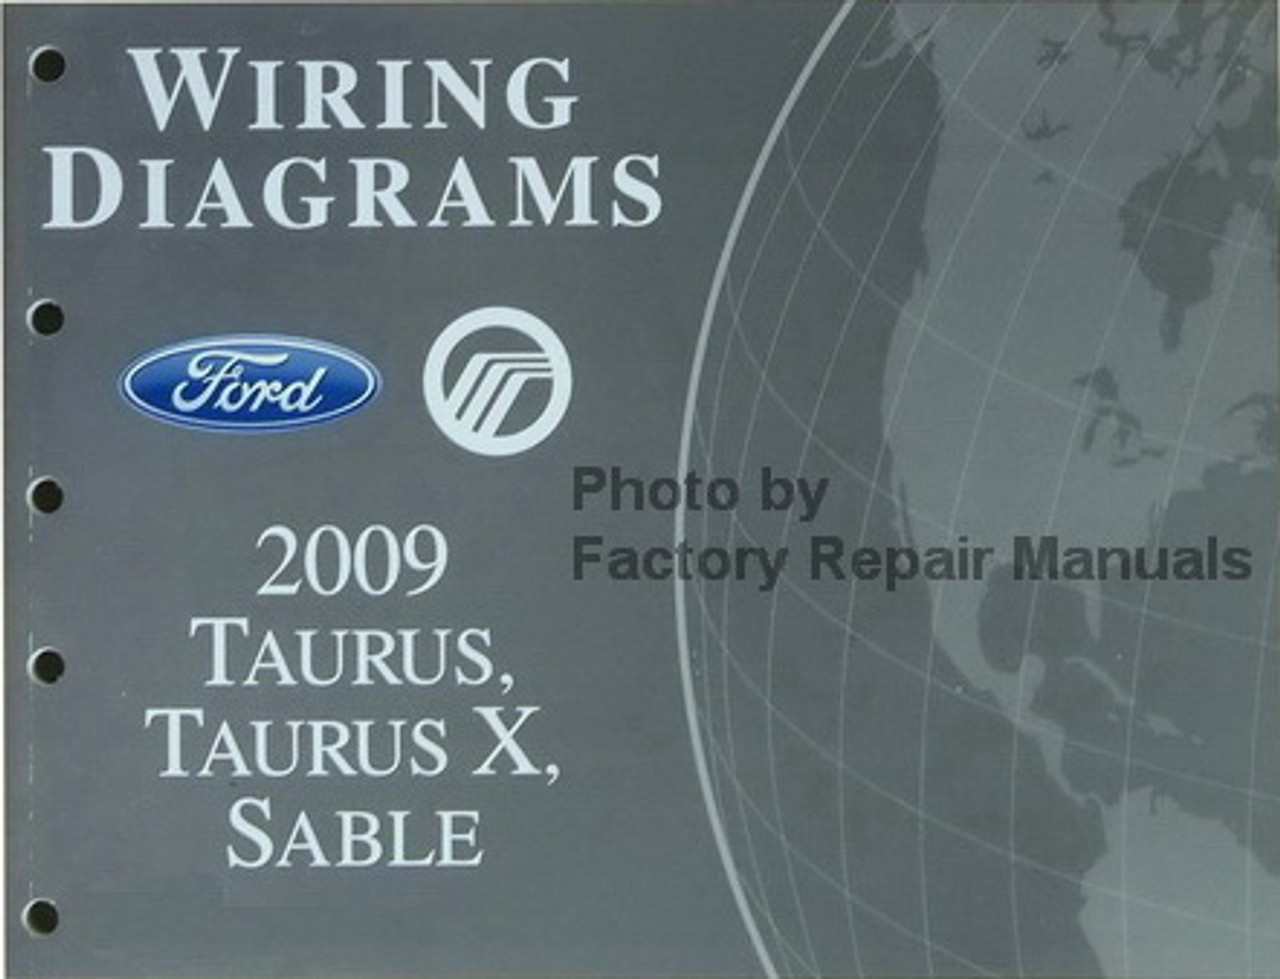 Ford Taurus Wiring Diagram on ford taurus dash lights, ford taurus spark plug diagram, ford taurus air conditioning, ford taurus solenoid diagram, ford taurus ground point locations, ford taurus door, ford taurus bracket diagram, ford taurus pcm diagram, ford taurus fuel diagram, 2004 ford taurus electrical diagram, ford taurus speaker size, ford taurus steering, ford taurus fan wiring, ford taurus horn, ford taurus body, ford engine wire diagram, ford taurus front axle diagram, 1993 ford explorer speaker wire diagram, ford taurus shift solenoid, ford taurus assembly diagram,